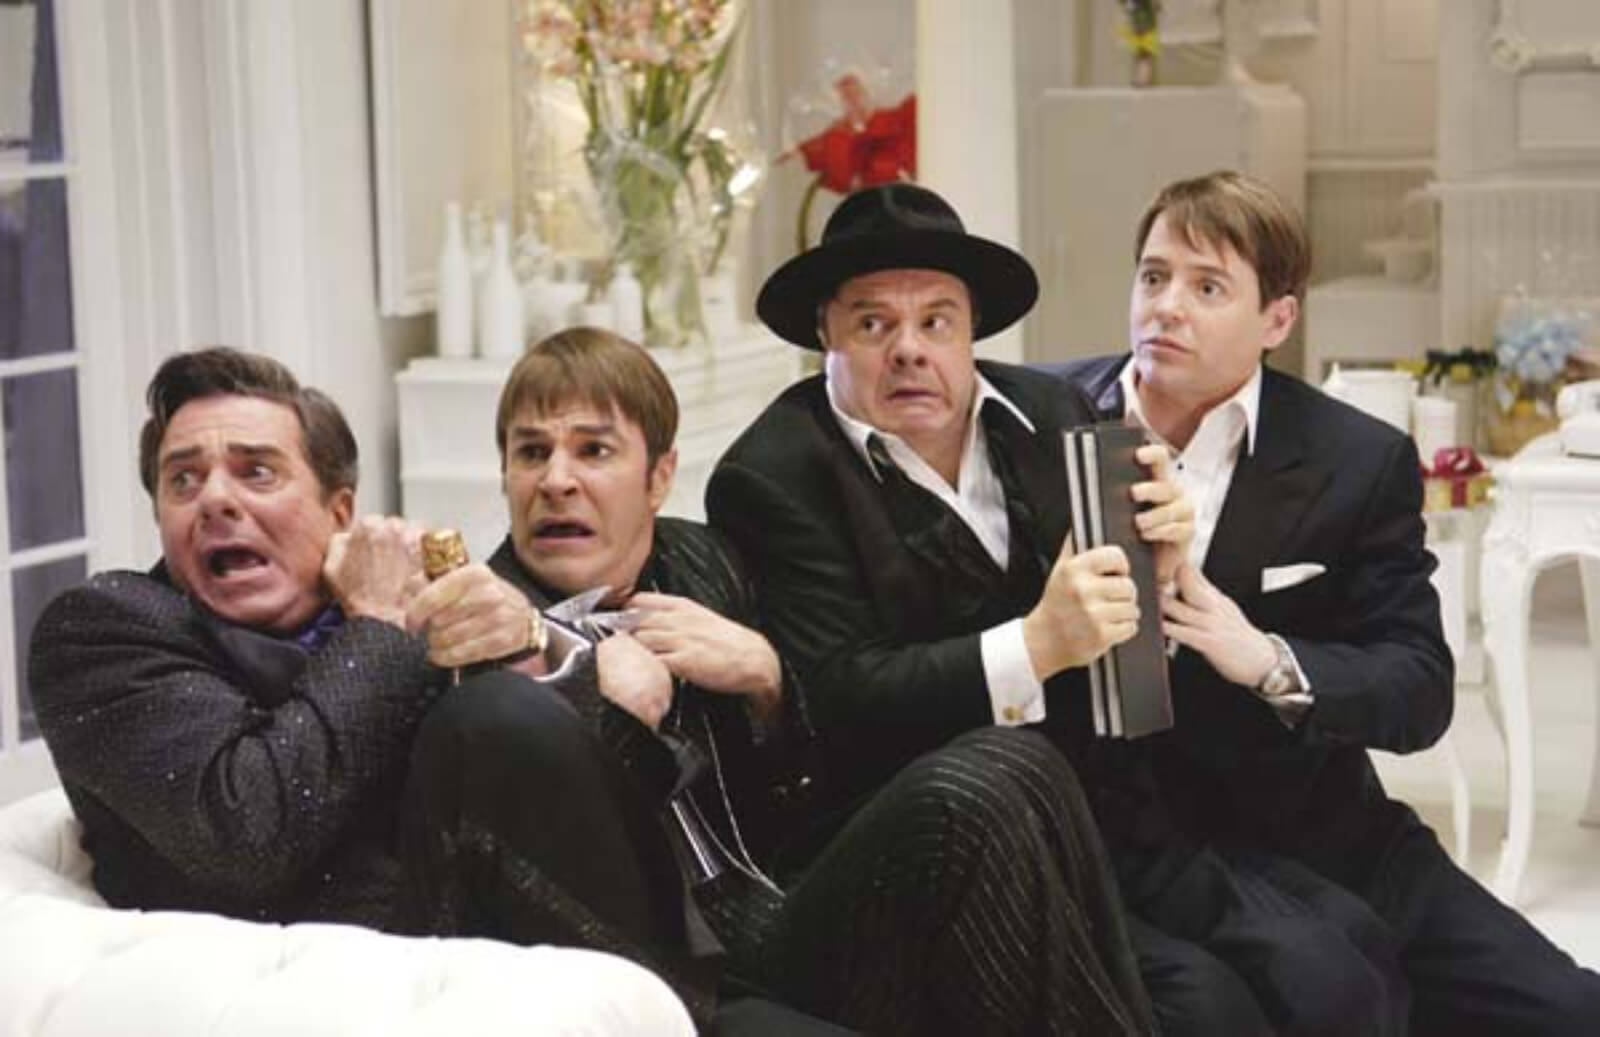 Roger De Bris (Gary Beach), Carmen Ghia (Roger Bart), Max Bialystock (Nathan Lane), and Leo Bloom (Matthew Broderick) sitting on a couch together looking startled at the entrance of Franz Liebkind.